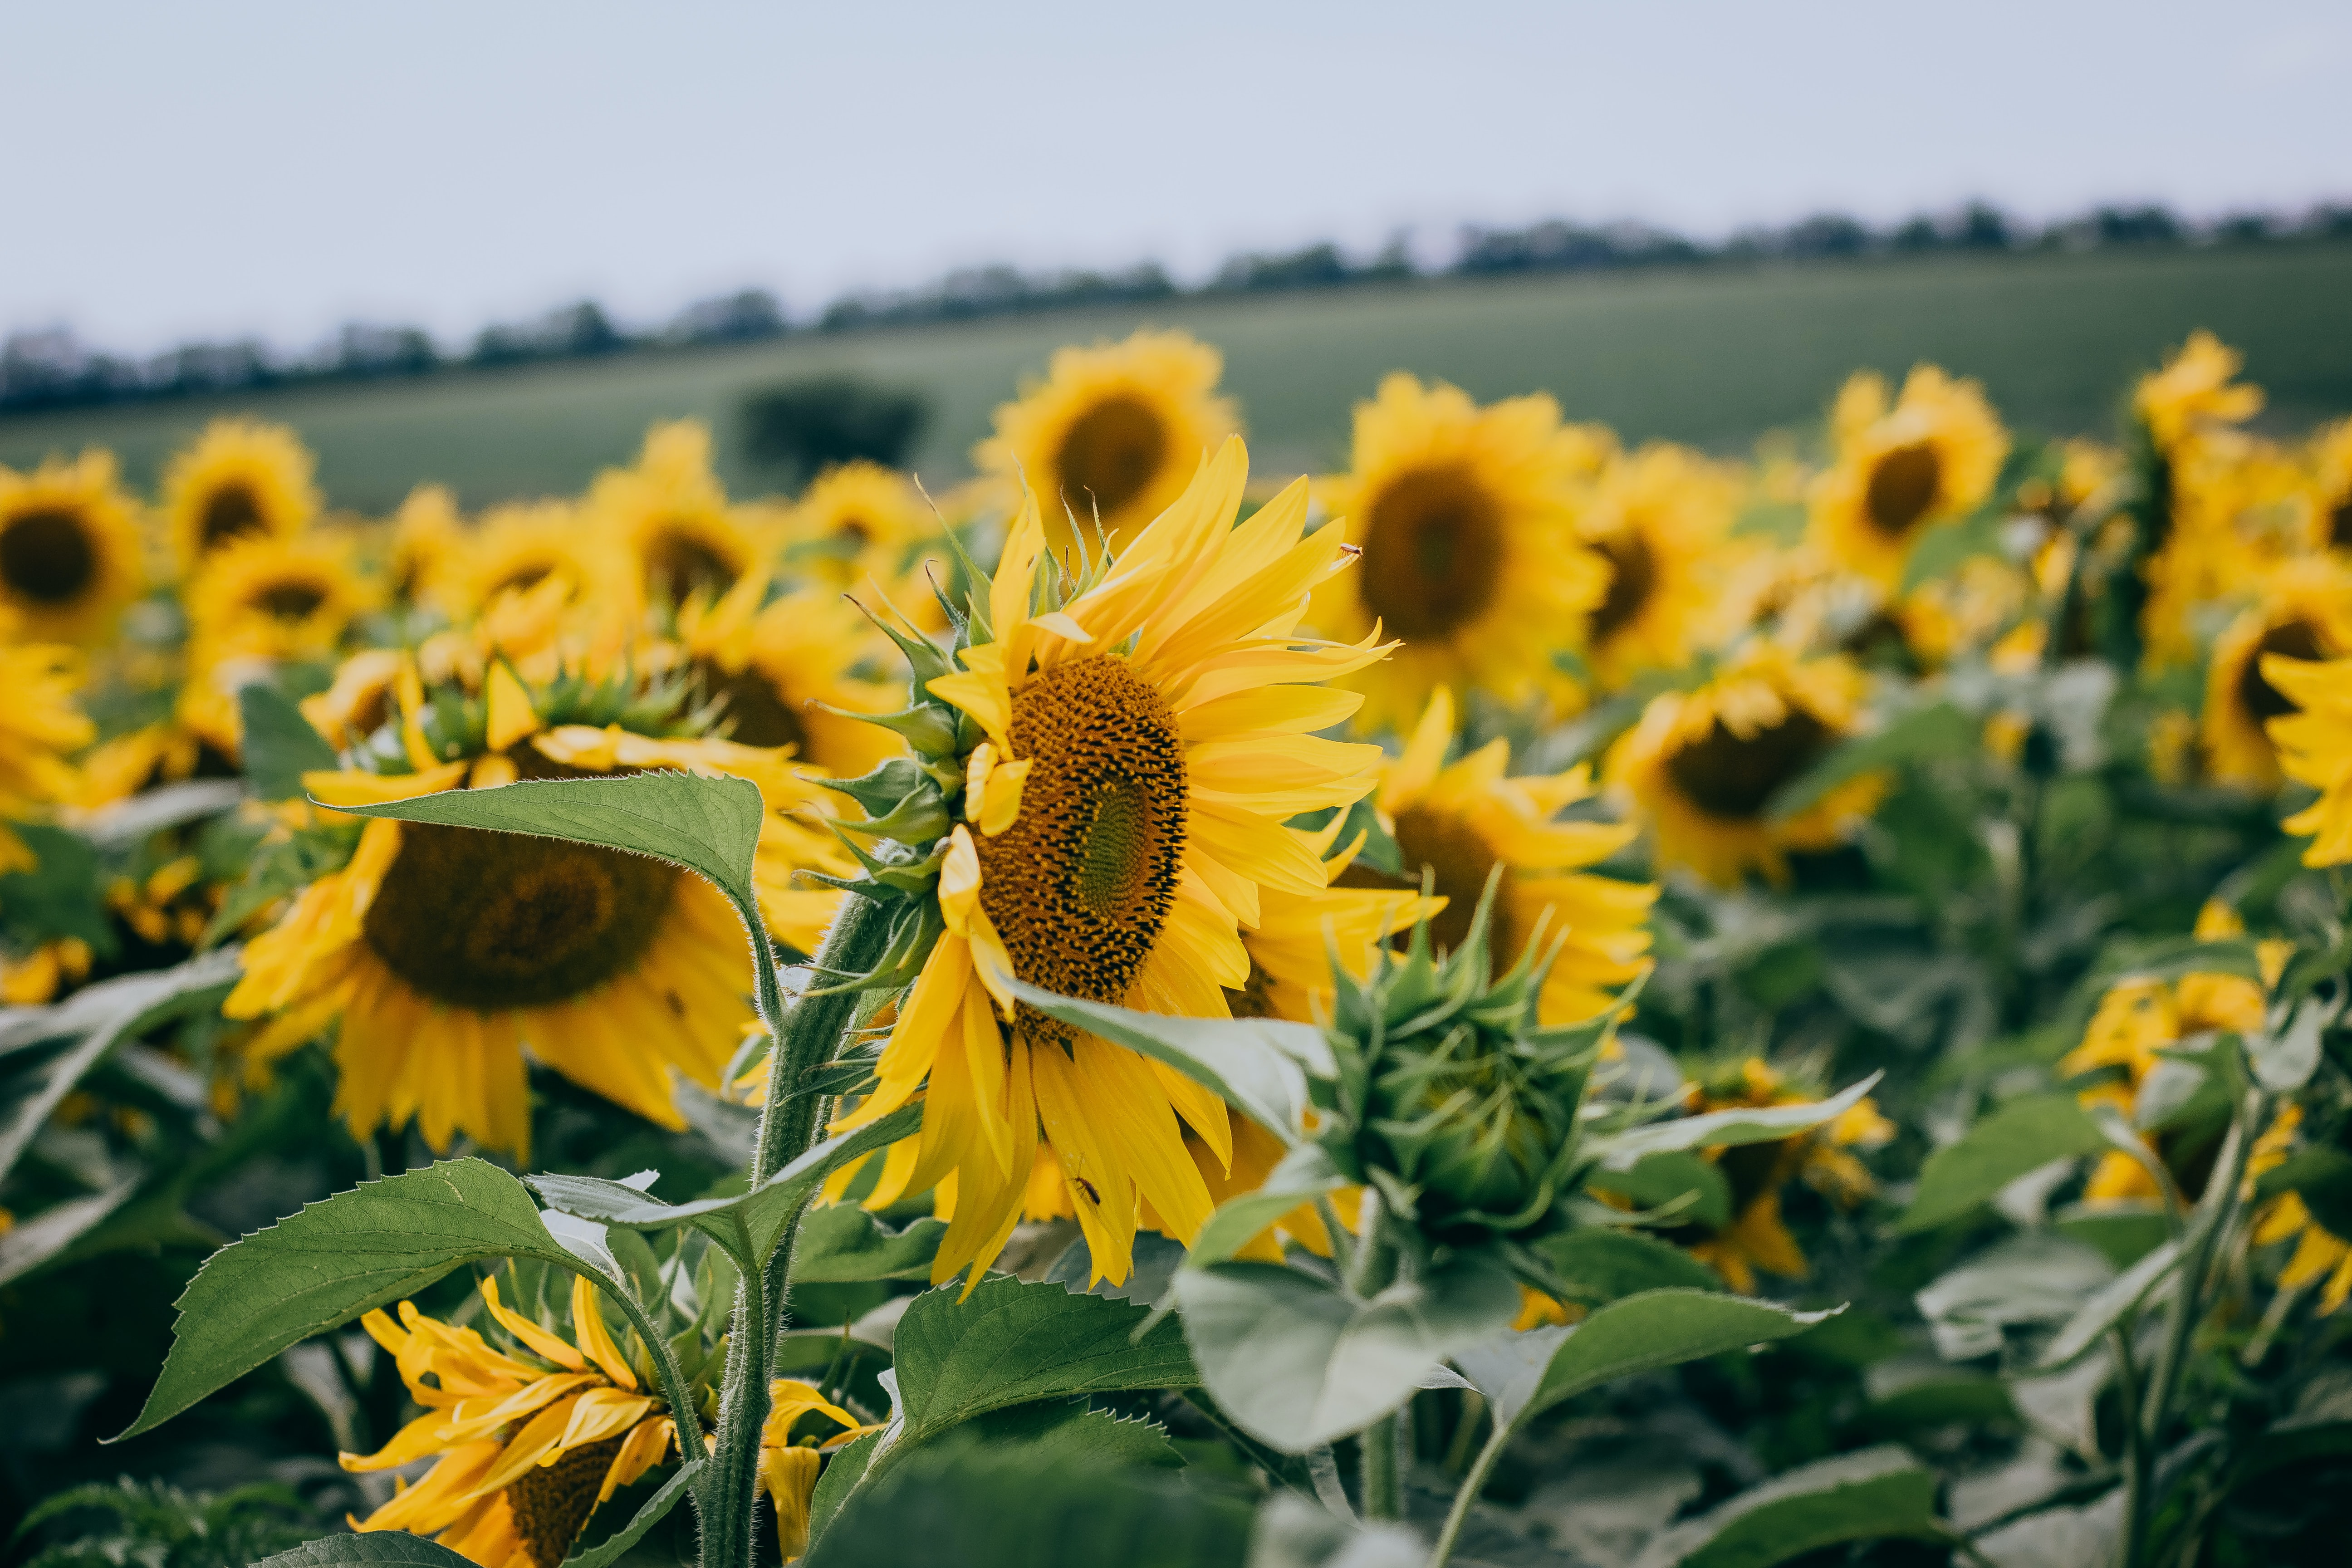 A field of blooming sunflowers on a cloudy day